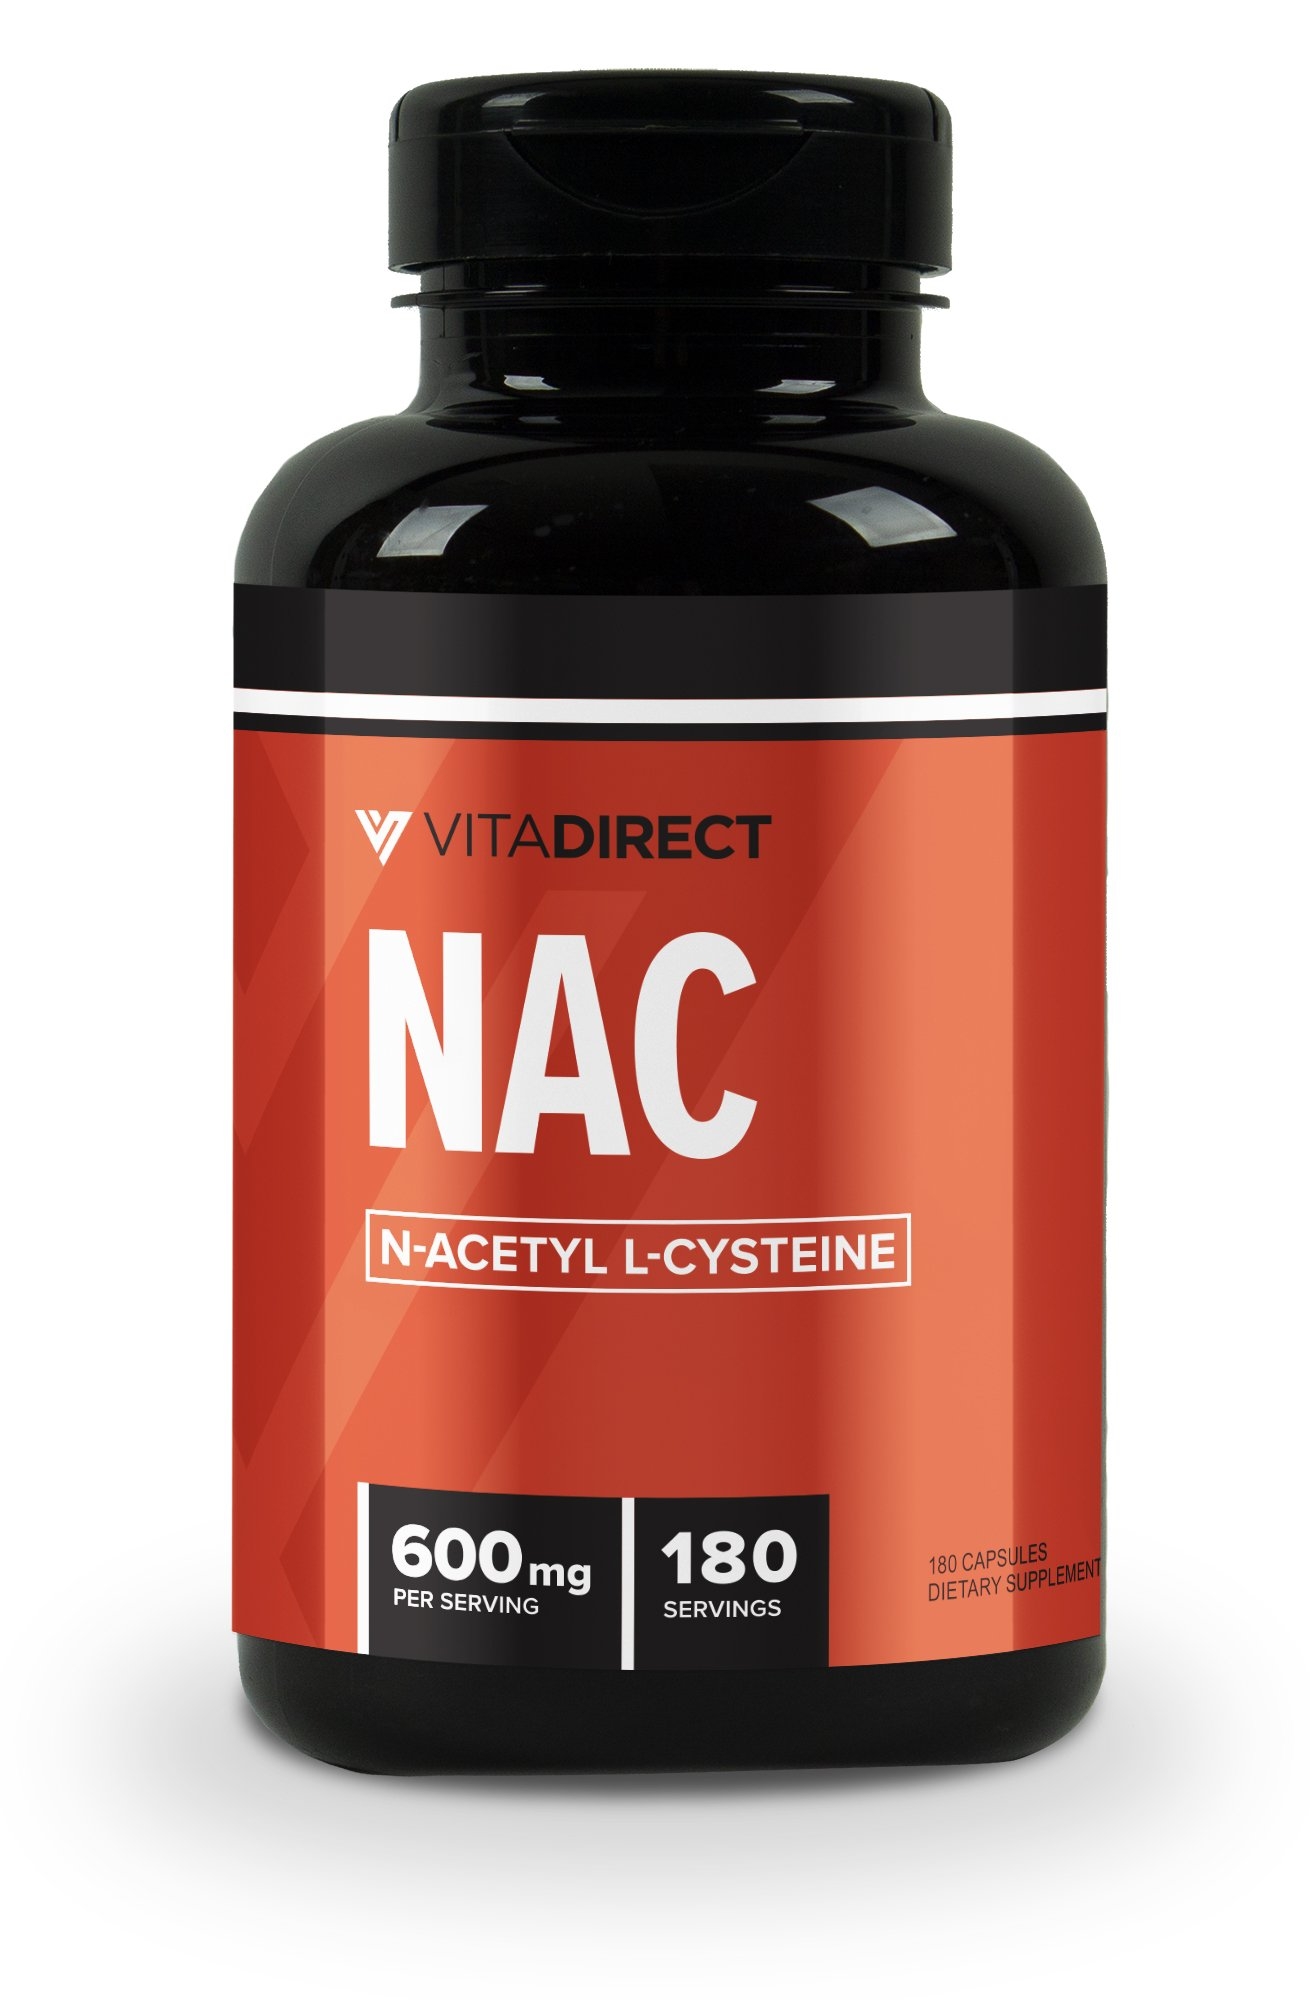 Vitadirect N-Acetyl L-Cysteine (NAC) 600 mg, 120 Vegetarian Capsules, Gluten Free and Non-GMO